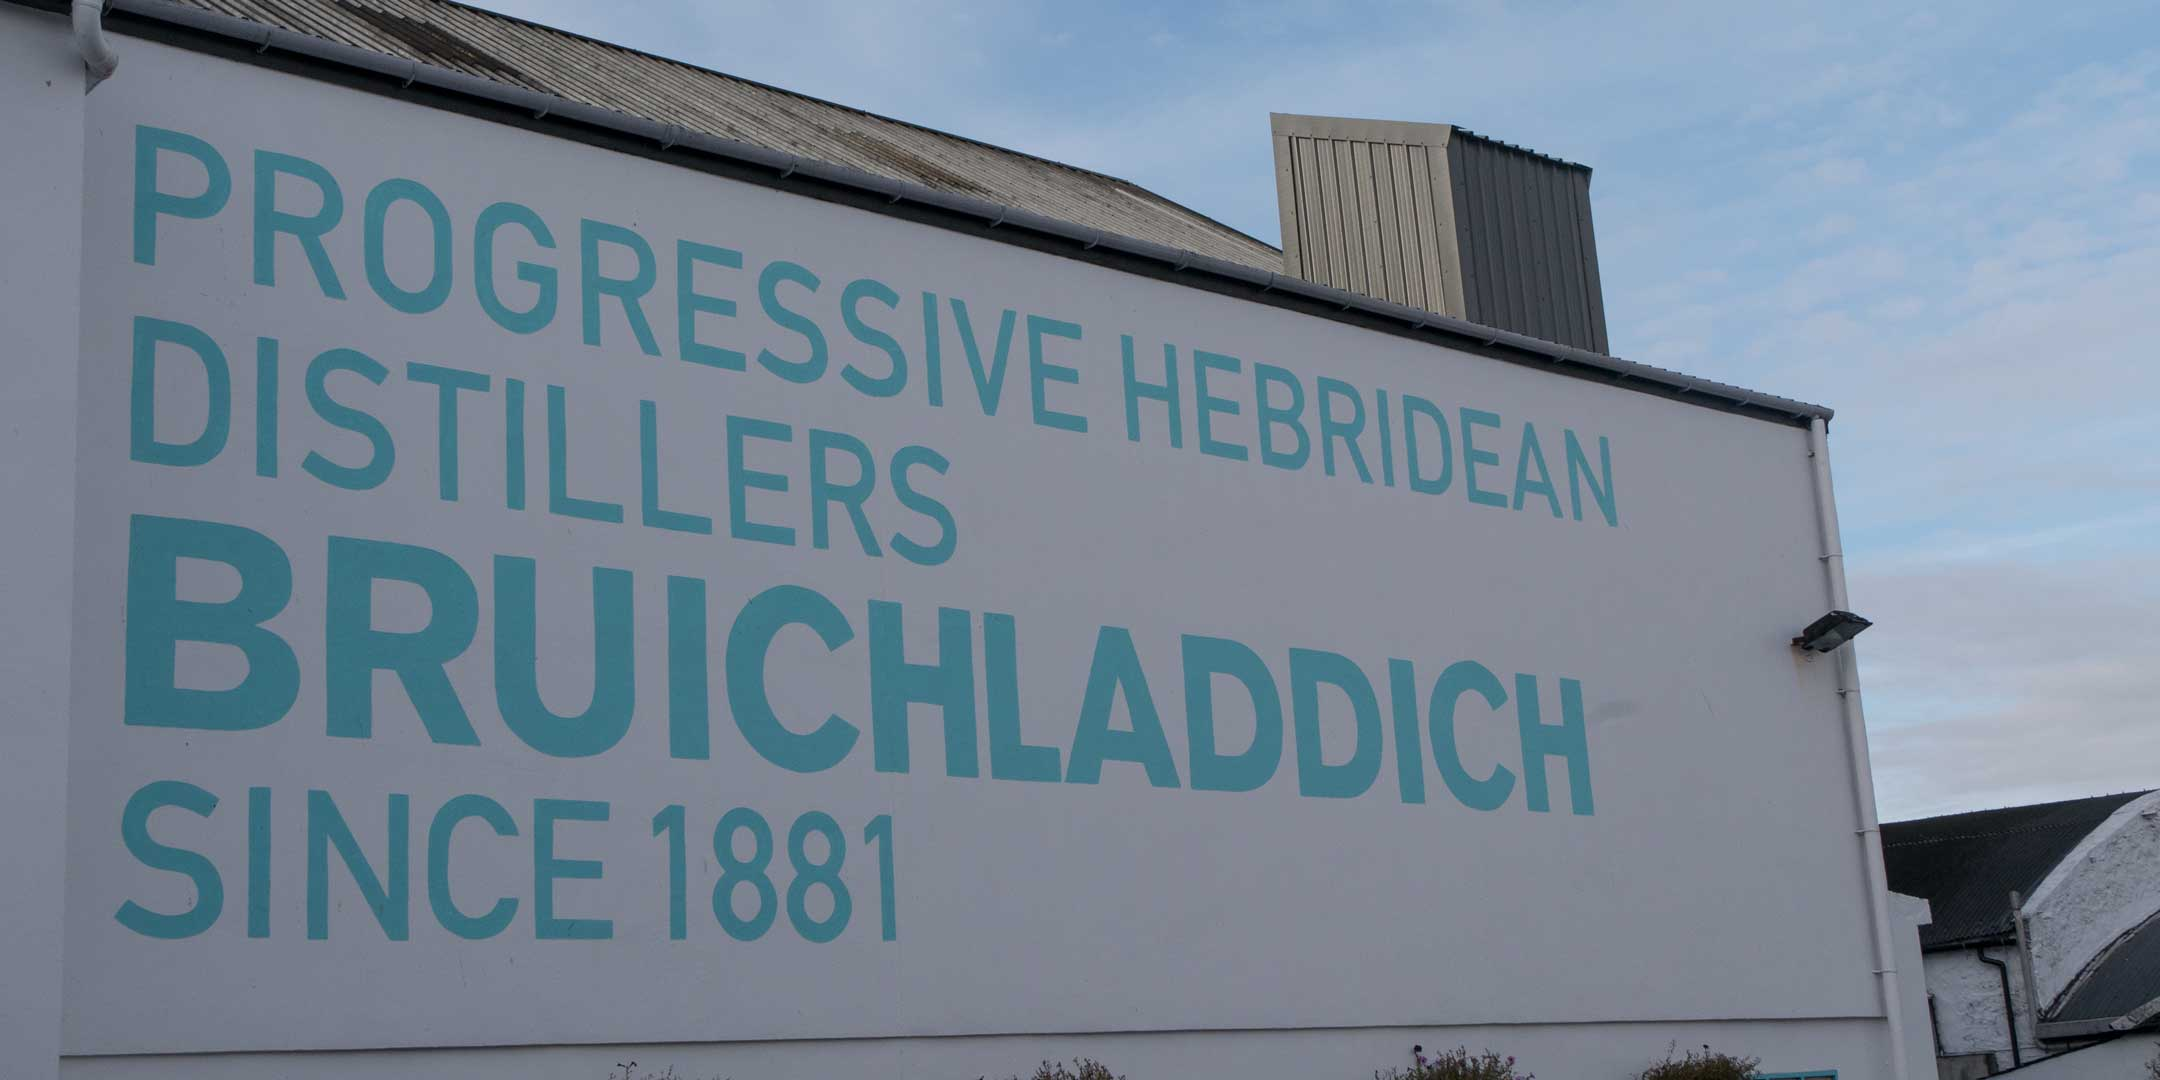 Bruichladdich distillery is in easy reach from Port Charlotte